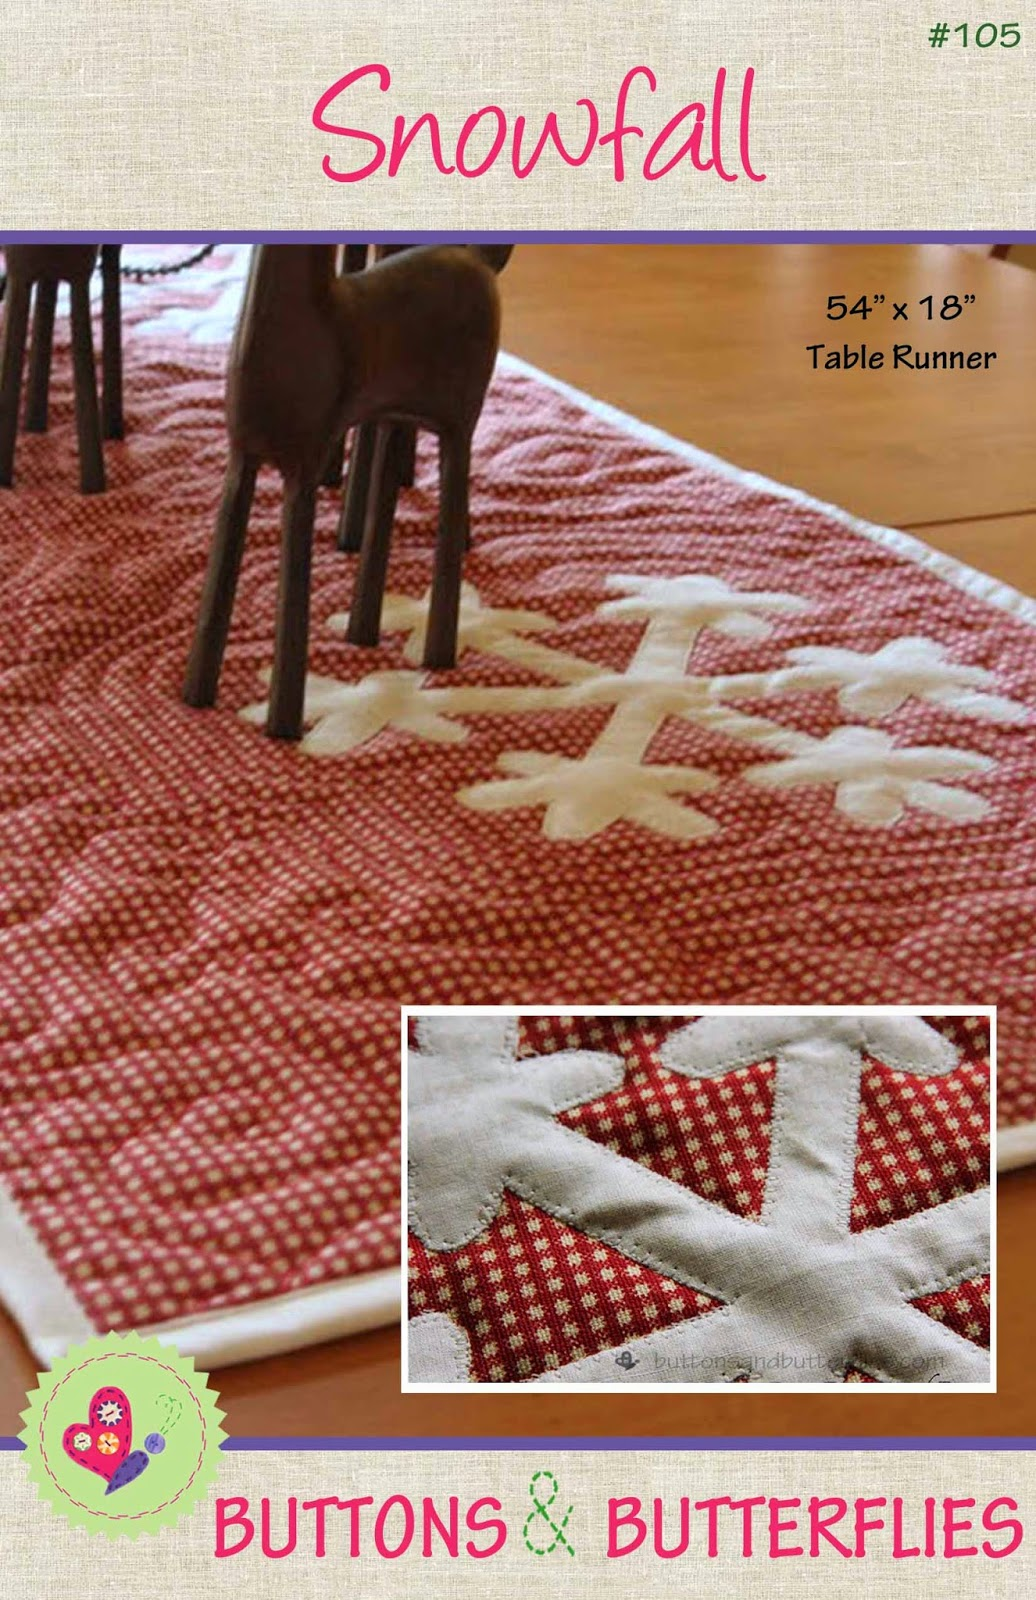 http://www.craftsy.com/pattern/quilting/home-decor/snowfall-tablerunner/124179